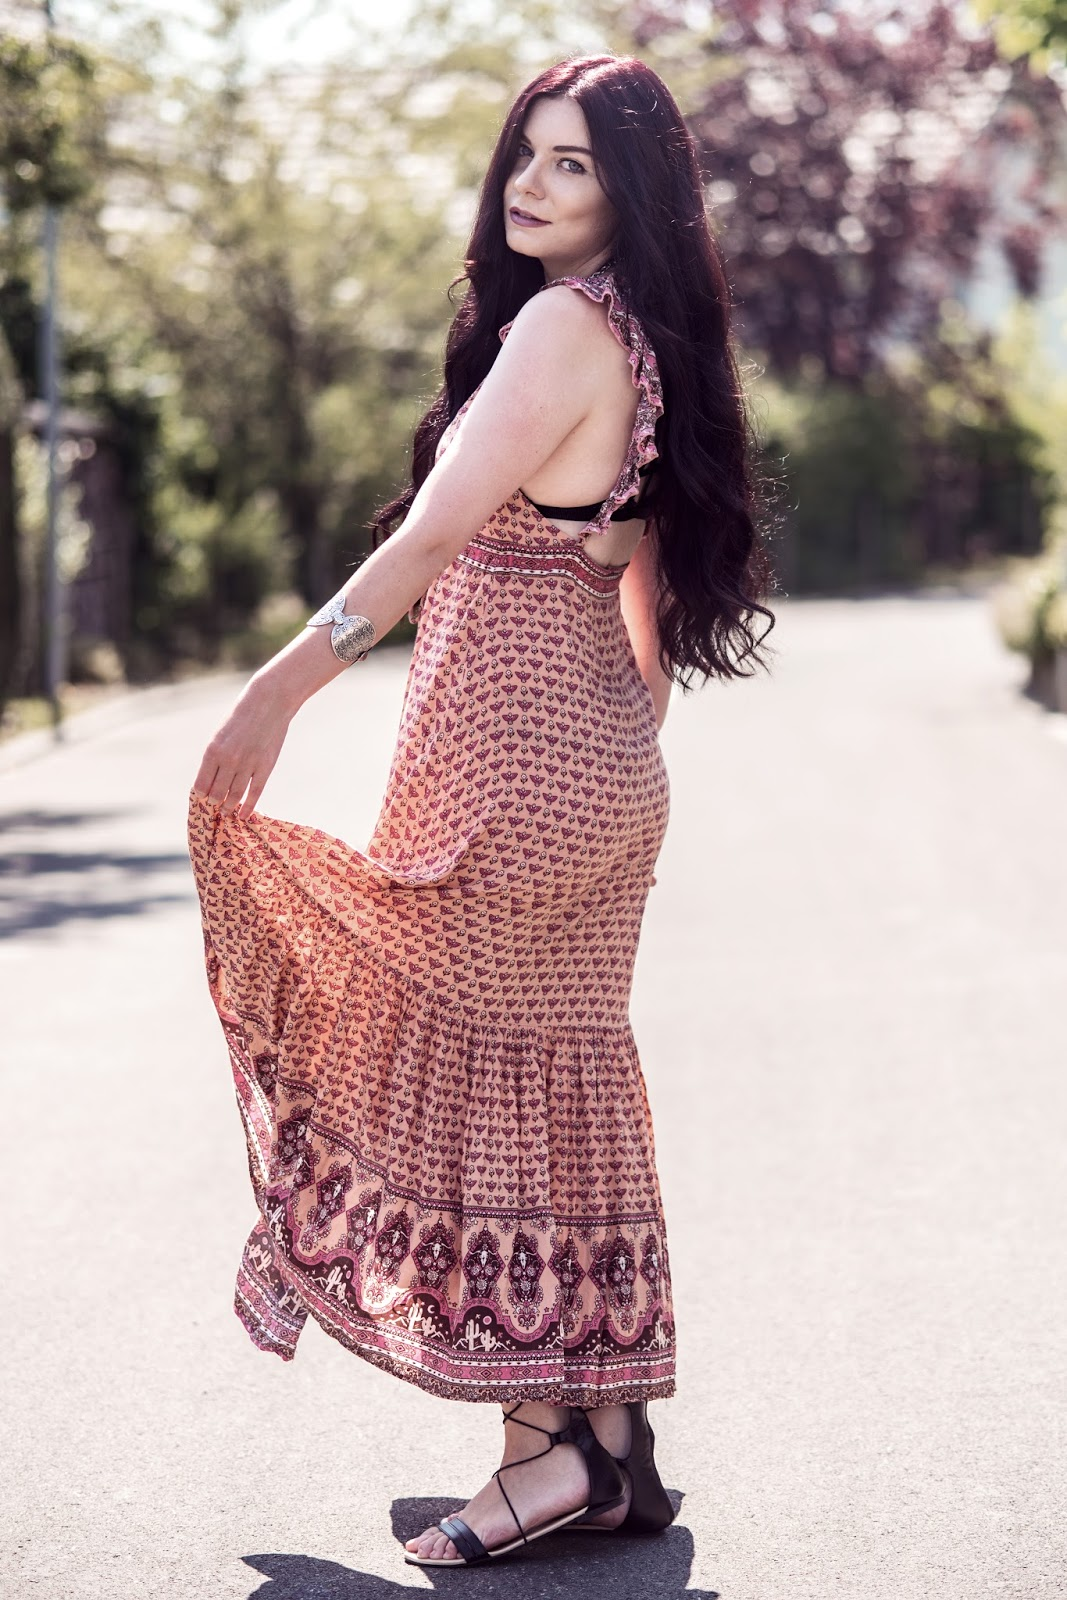 Spell Designs Sunset Road Frill Maxi Dress | Boho Dress Summer Outfit | Rose Kiara Peaches